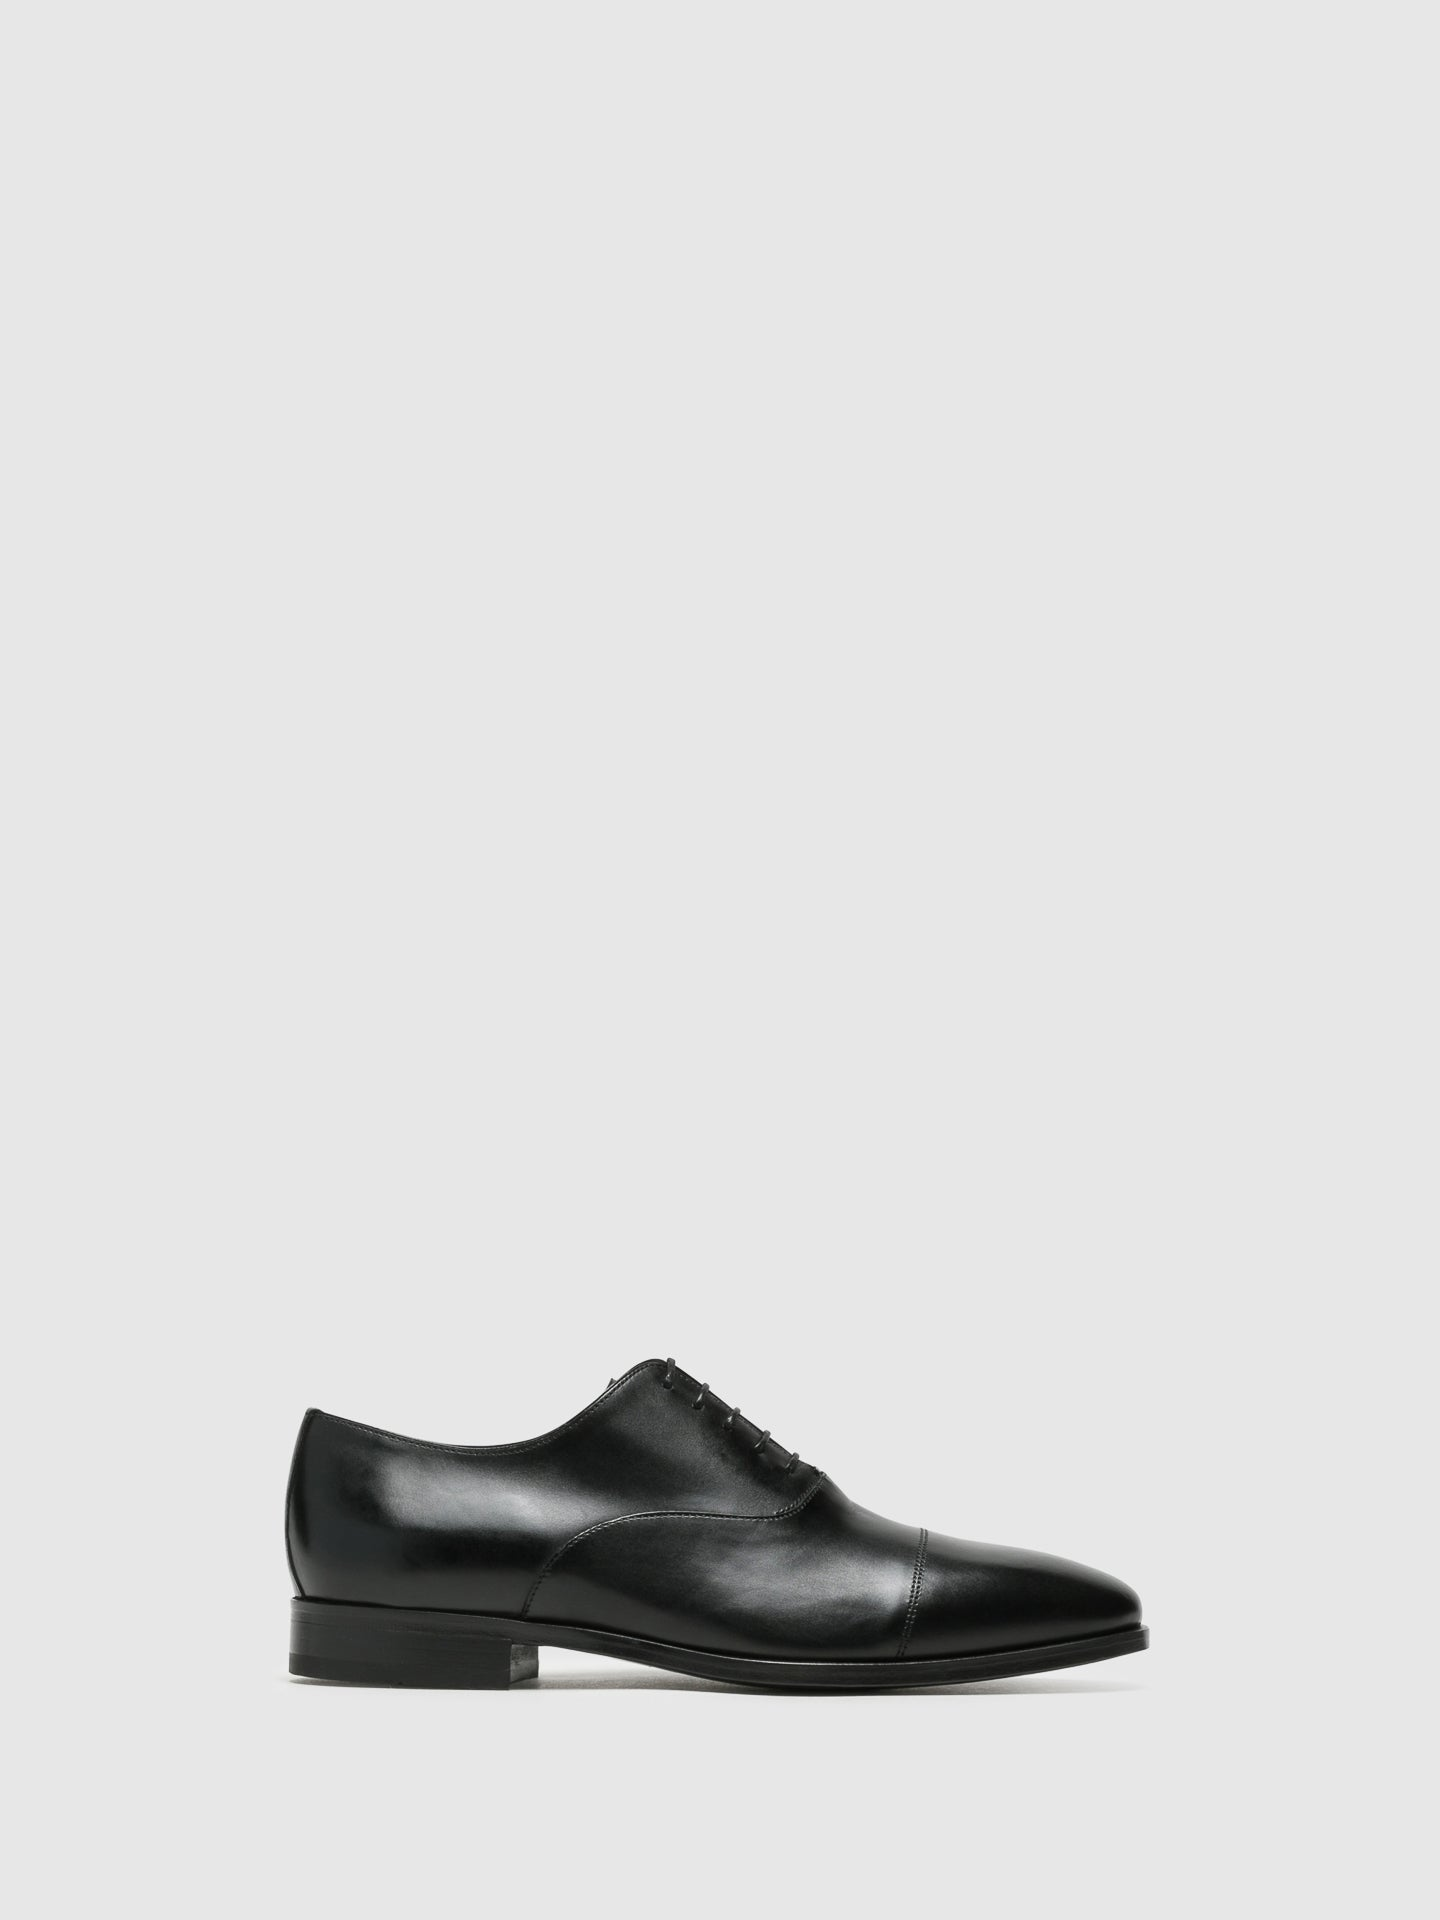 Armando Silva Black Lace-up Shoes